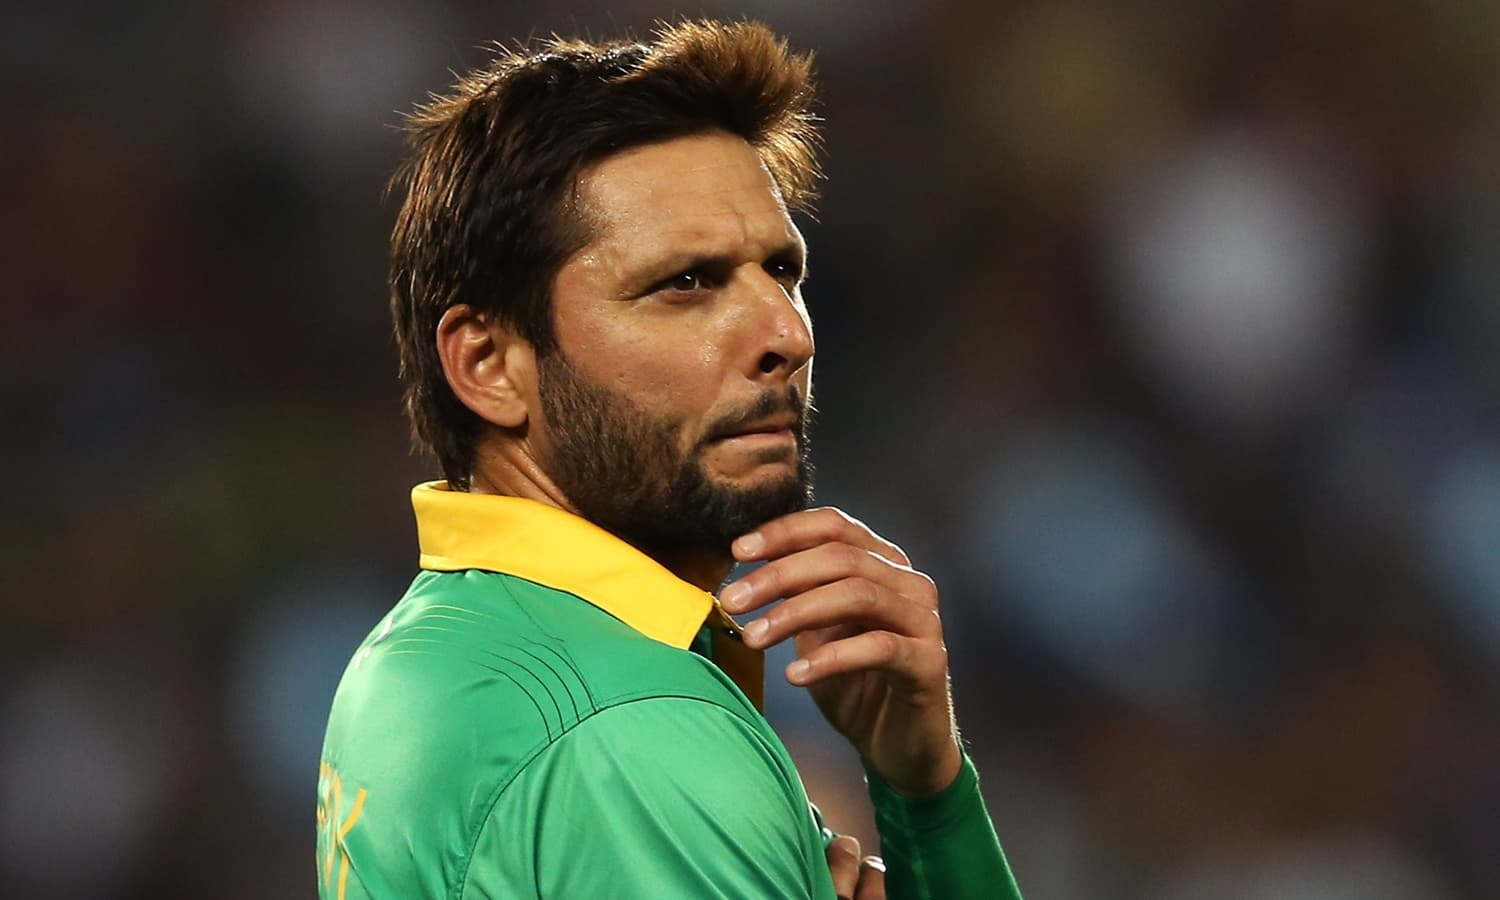 Afridi's form and magic touch have deserted him just at the wrong time. — AFP/file